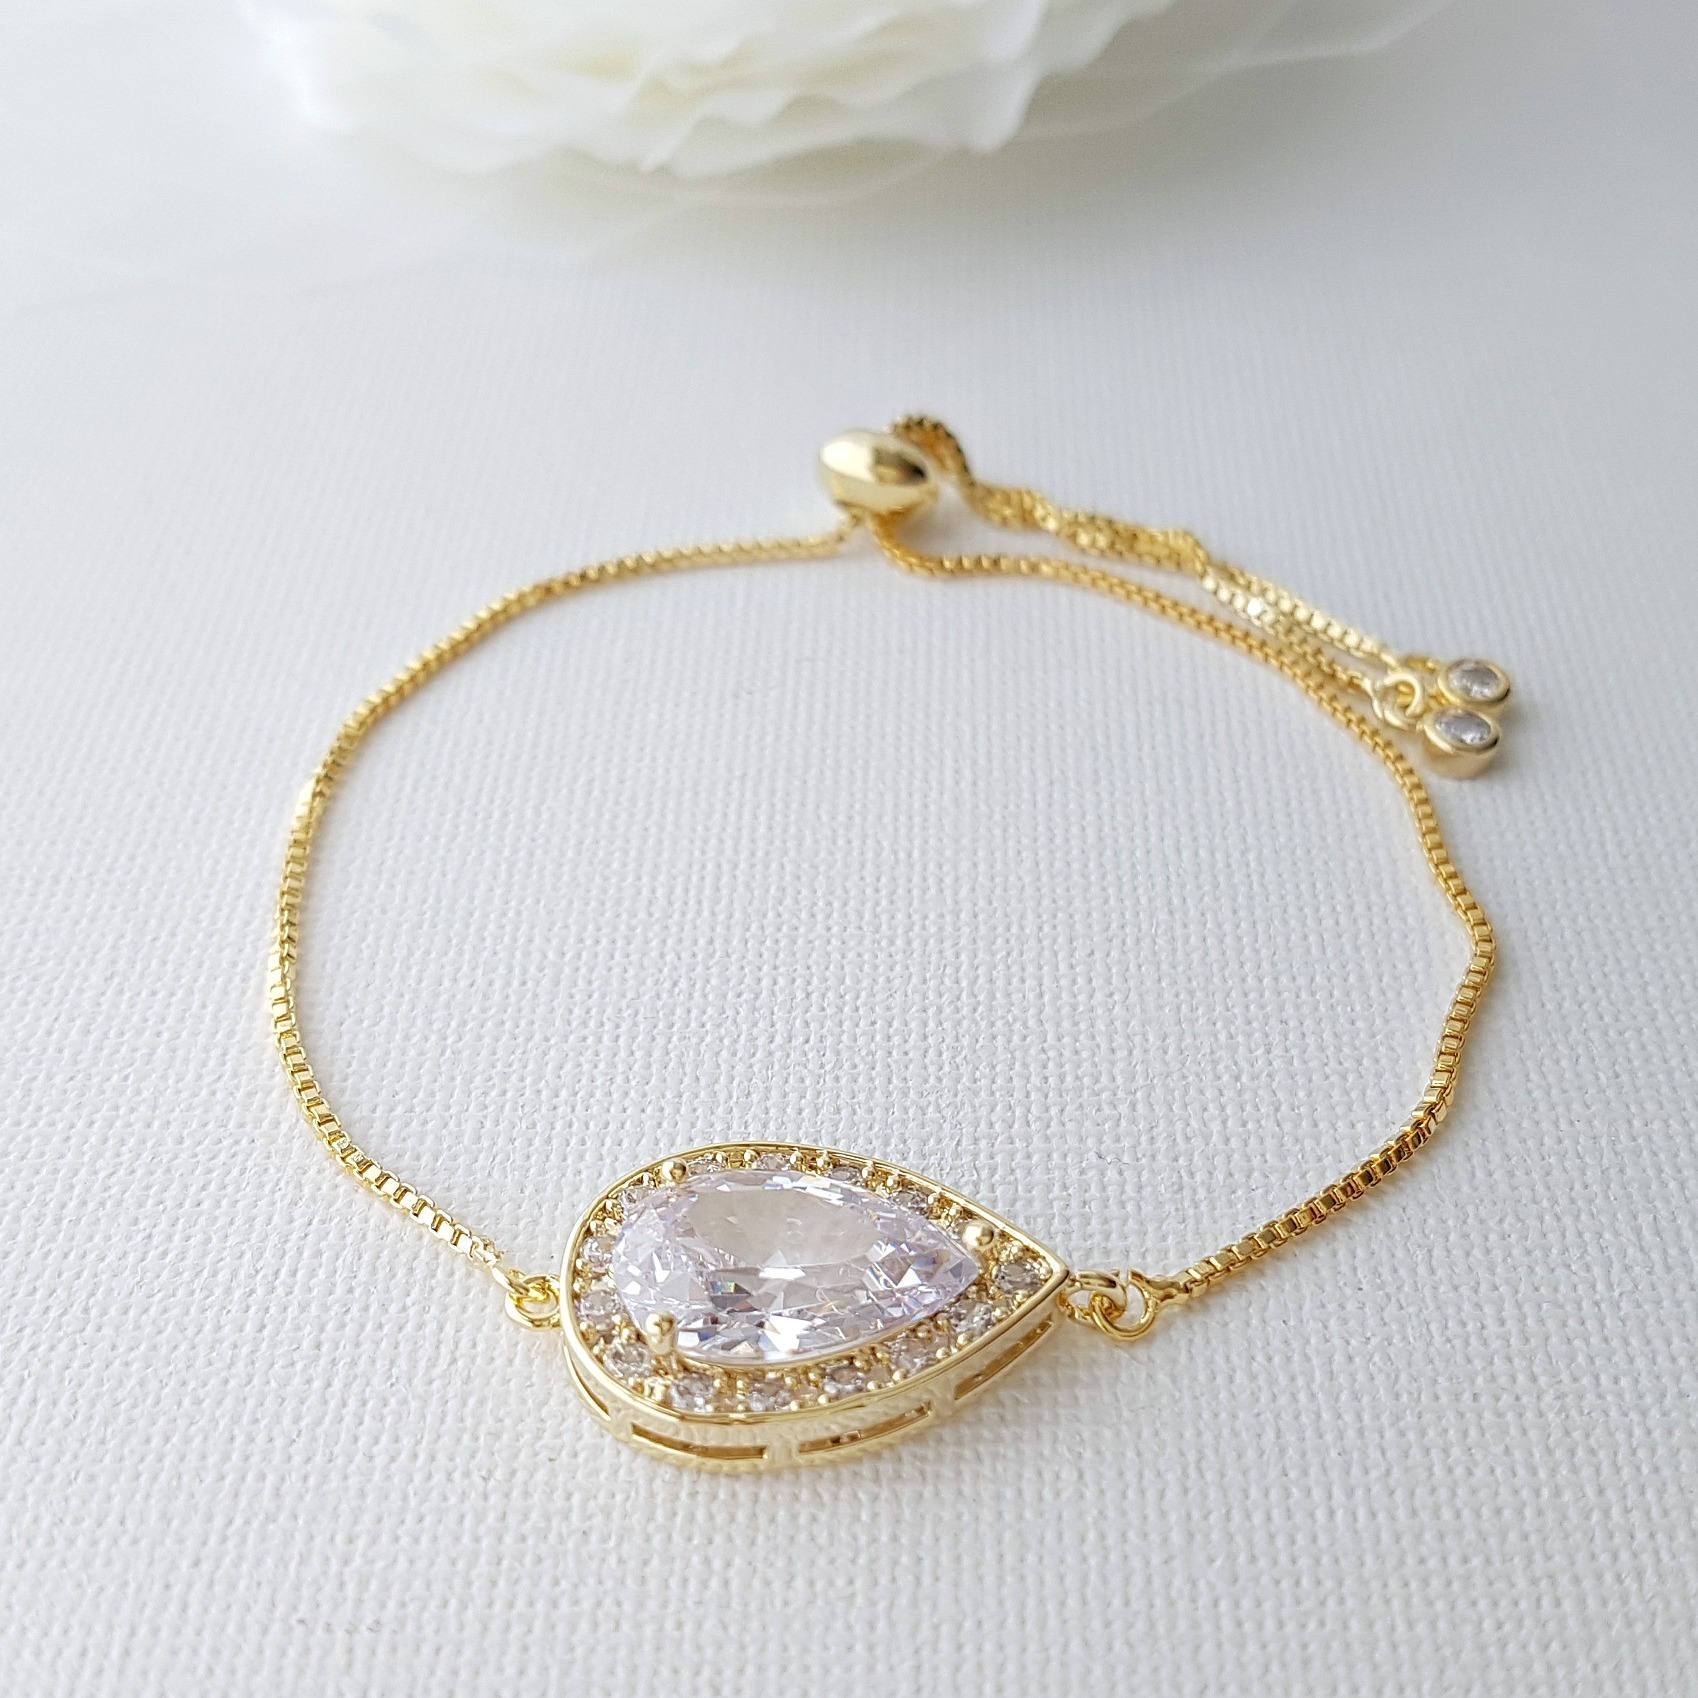 Simple Wedding Bracelet Gold, Gold Bridal Bracelet, Teardrop, Crystal Adjustable Bracelet, Gold Bridesmaid Bracelet, Wedding Jewelry, Evelyn